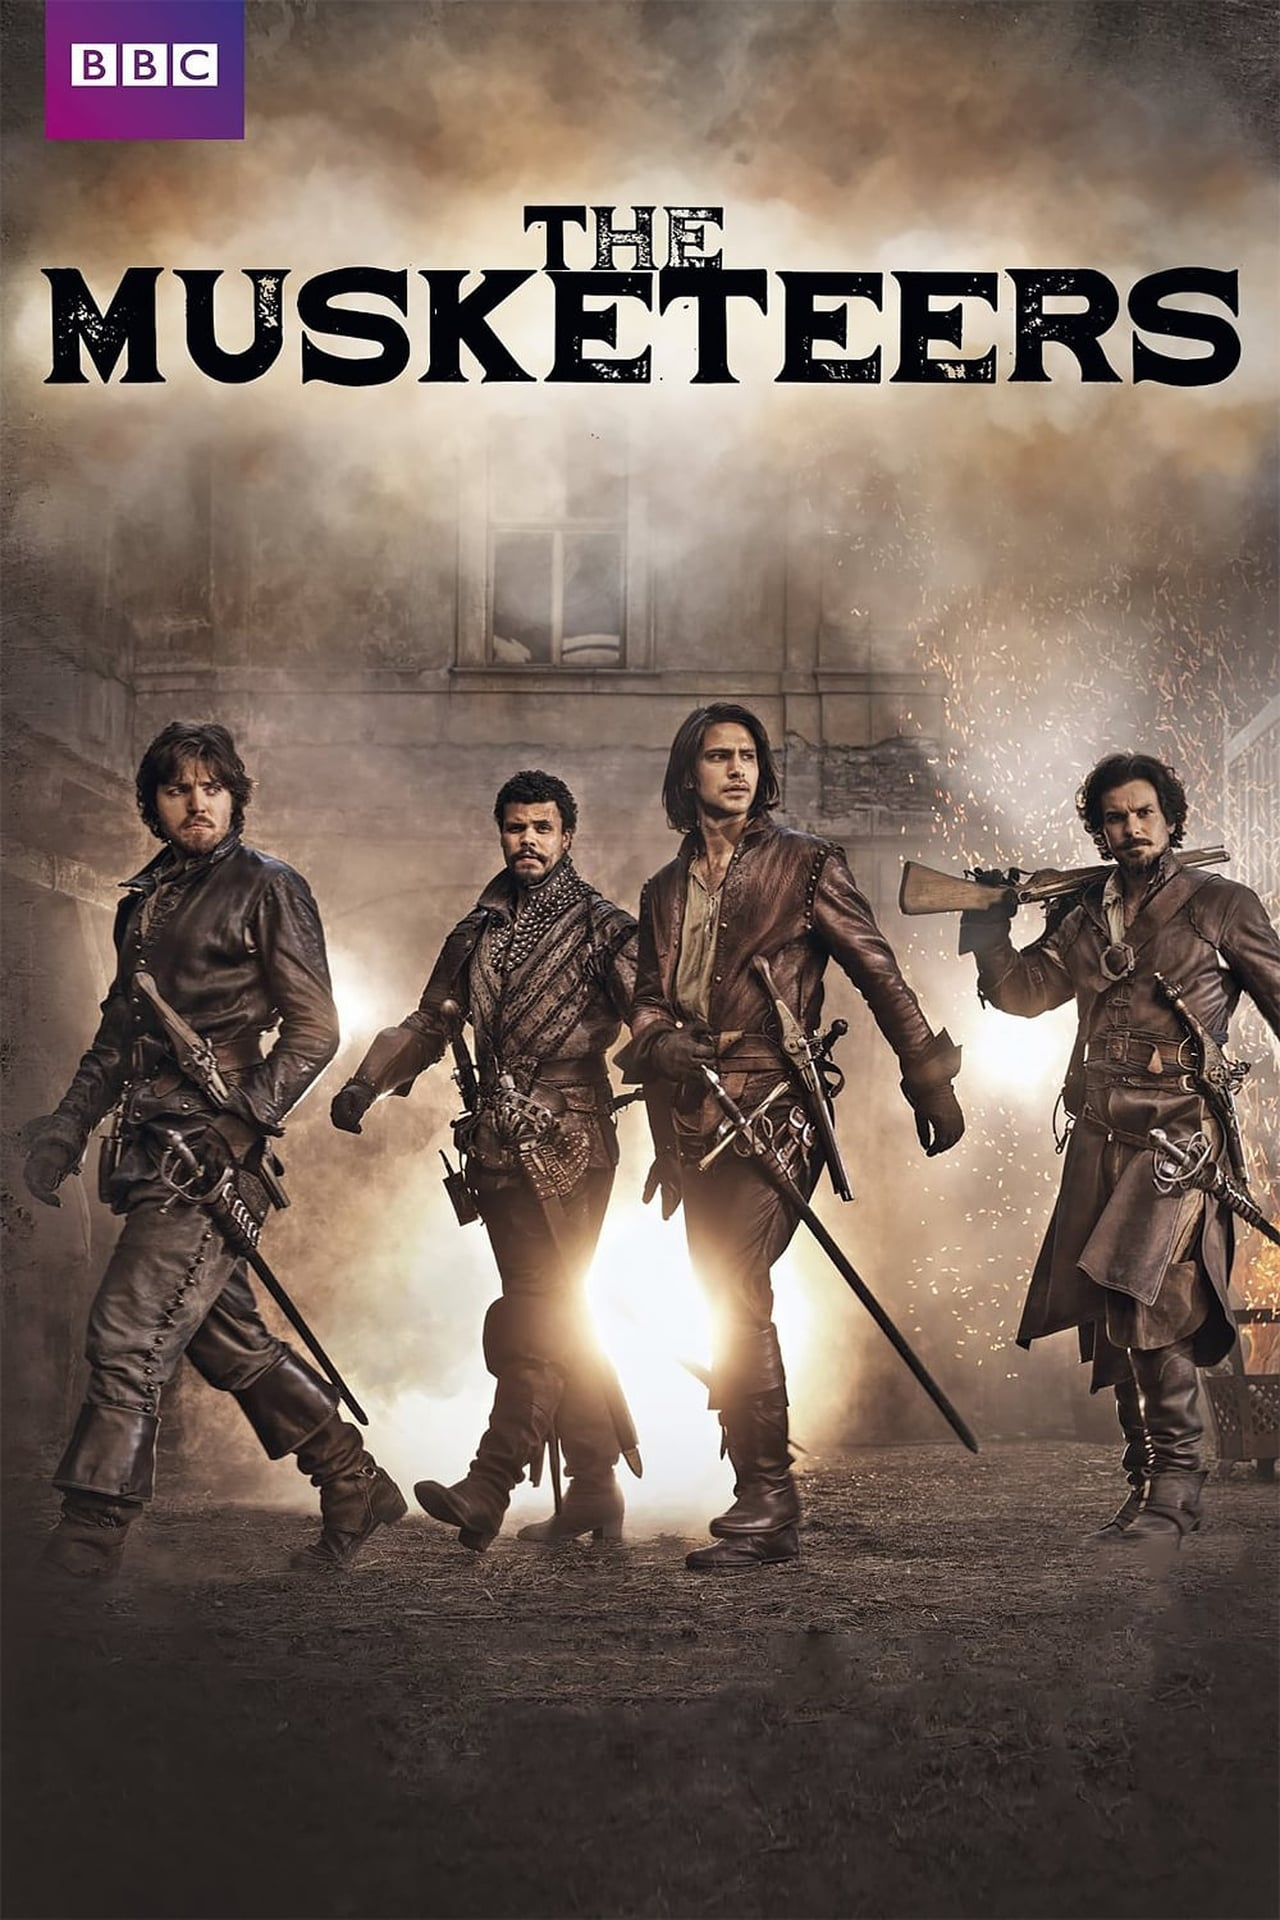 The Musketeers (season 1)